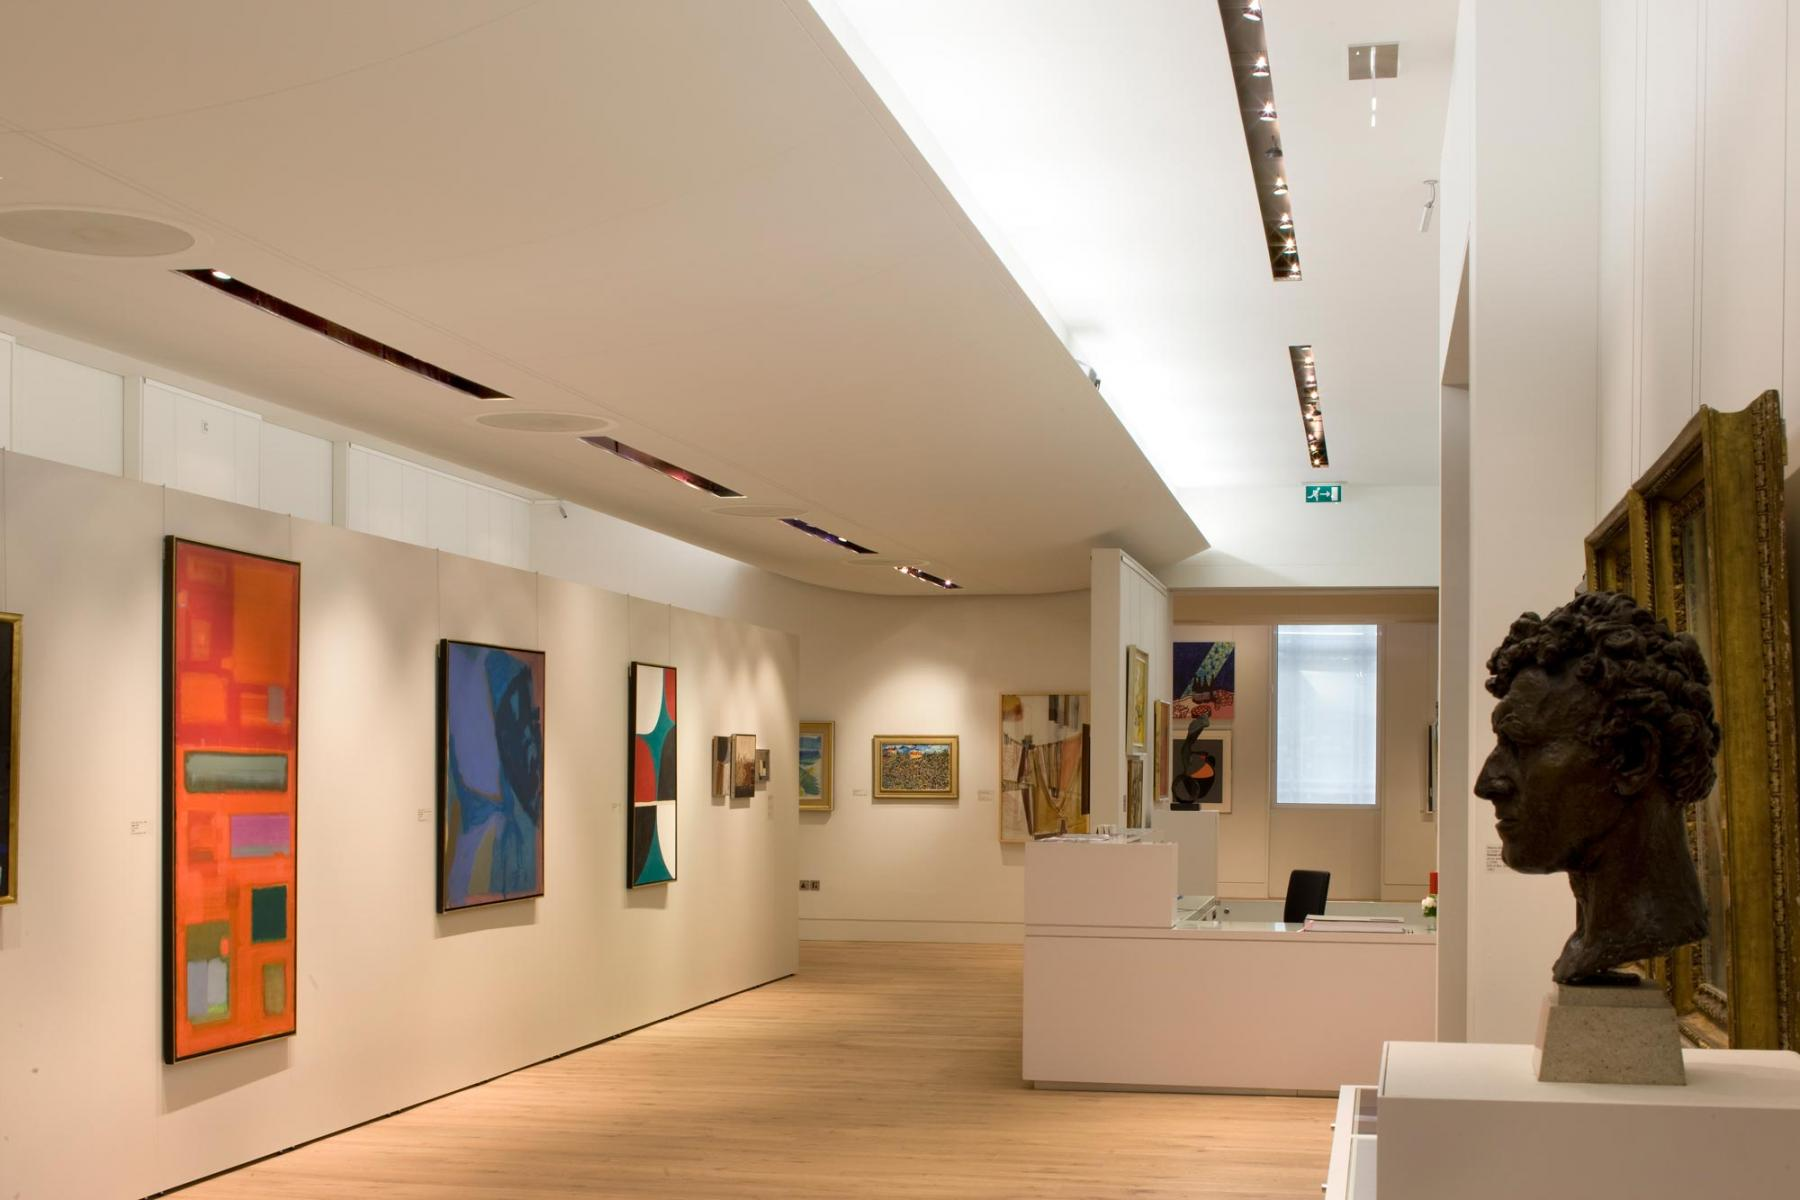 Leeds University Art Gallery, Leeds - Interior view